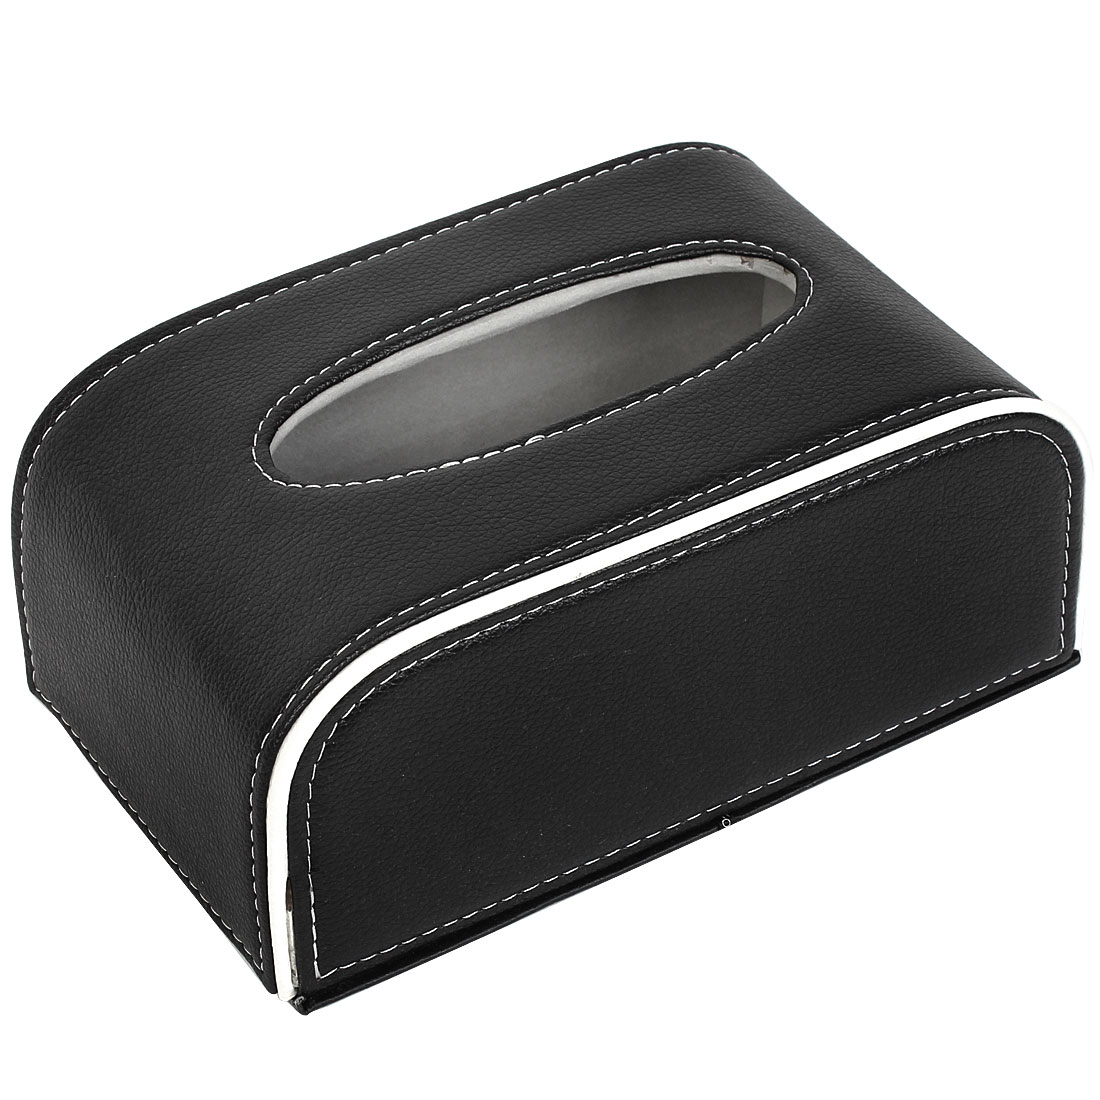 Car Auto Rectangular Paper Tissue Box Case Holder Black White 21cm x 12.5cm x 9cm